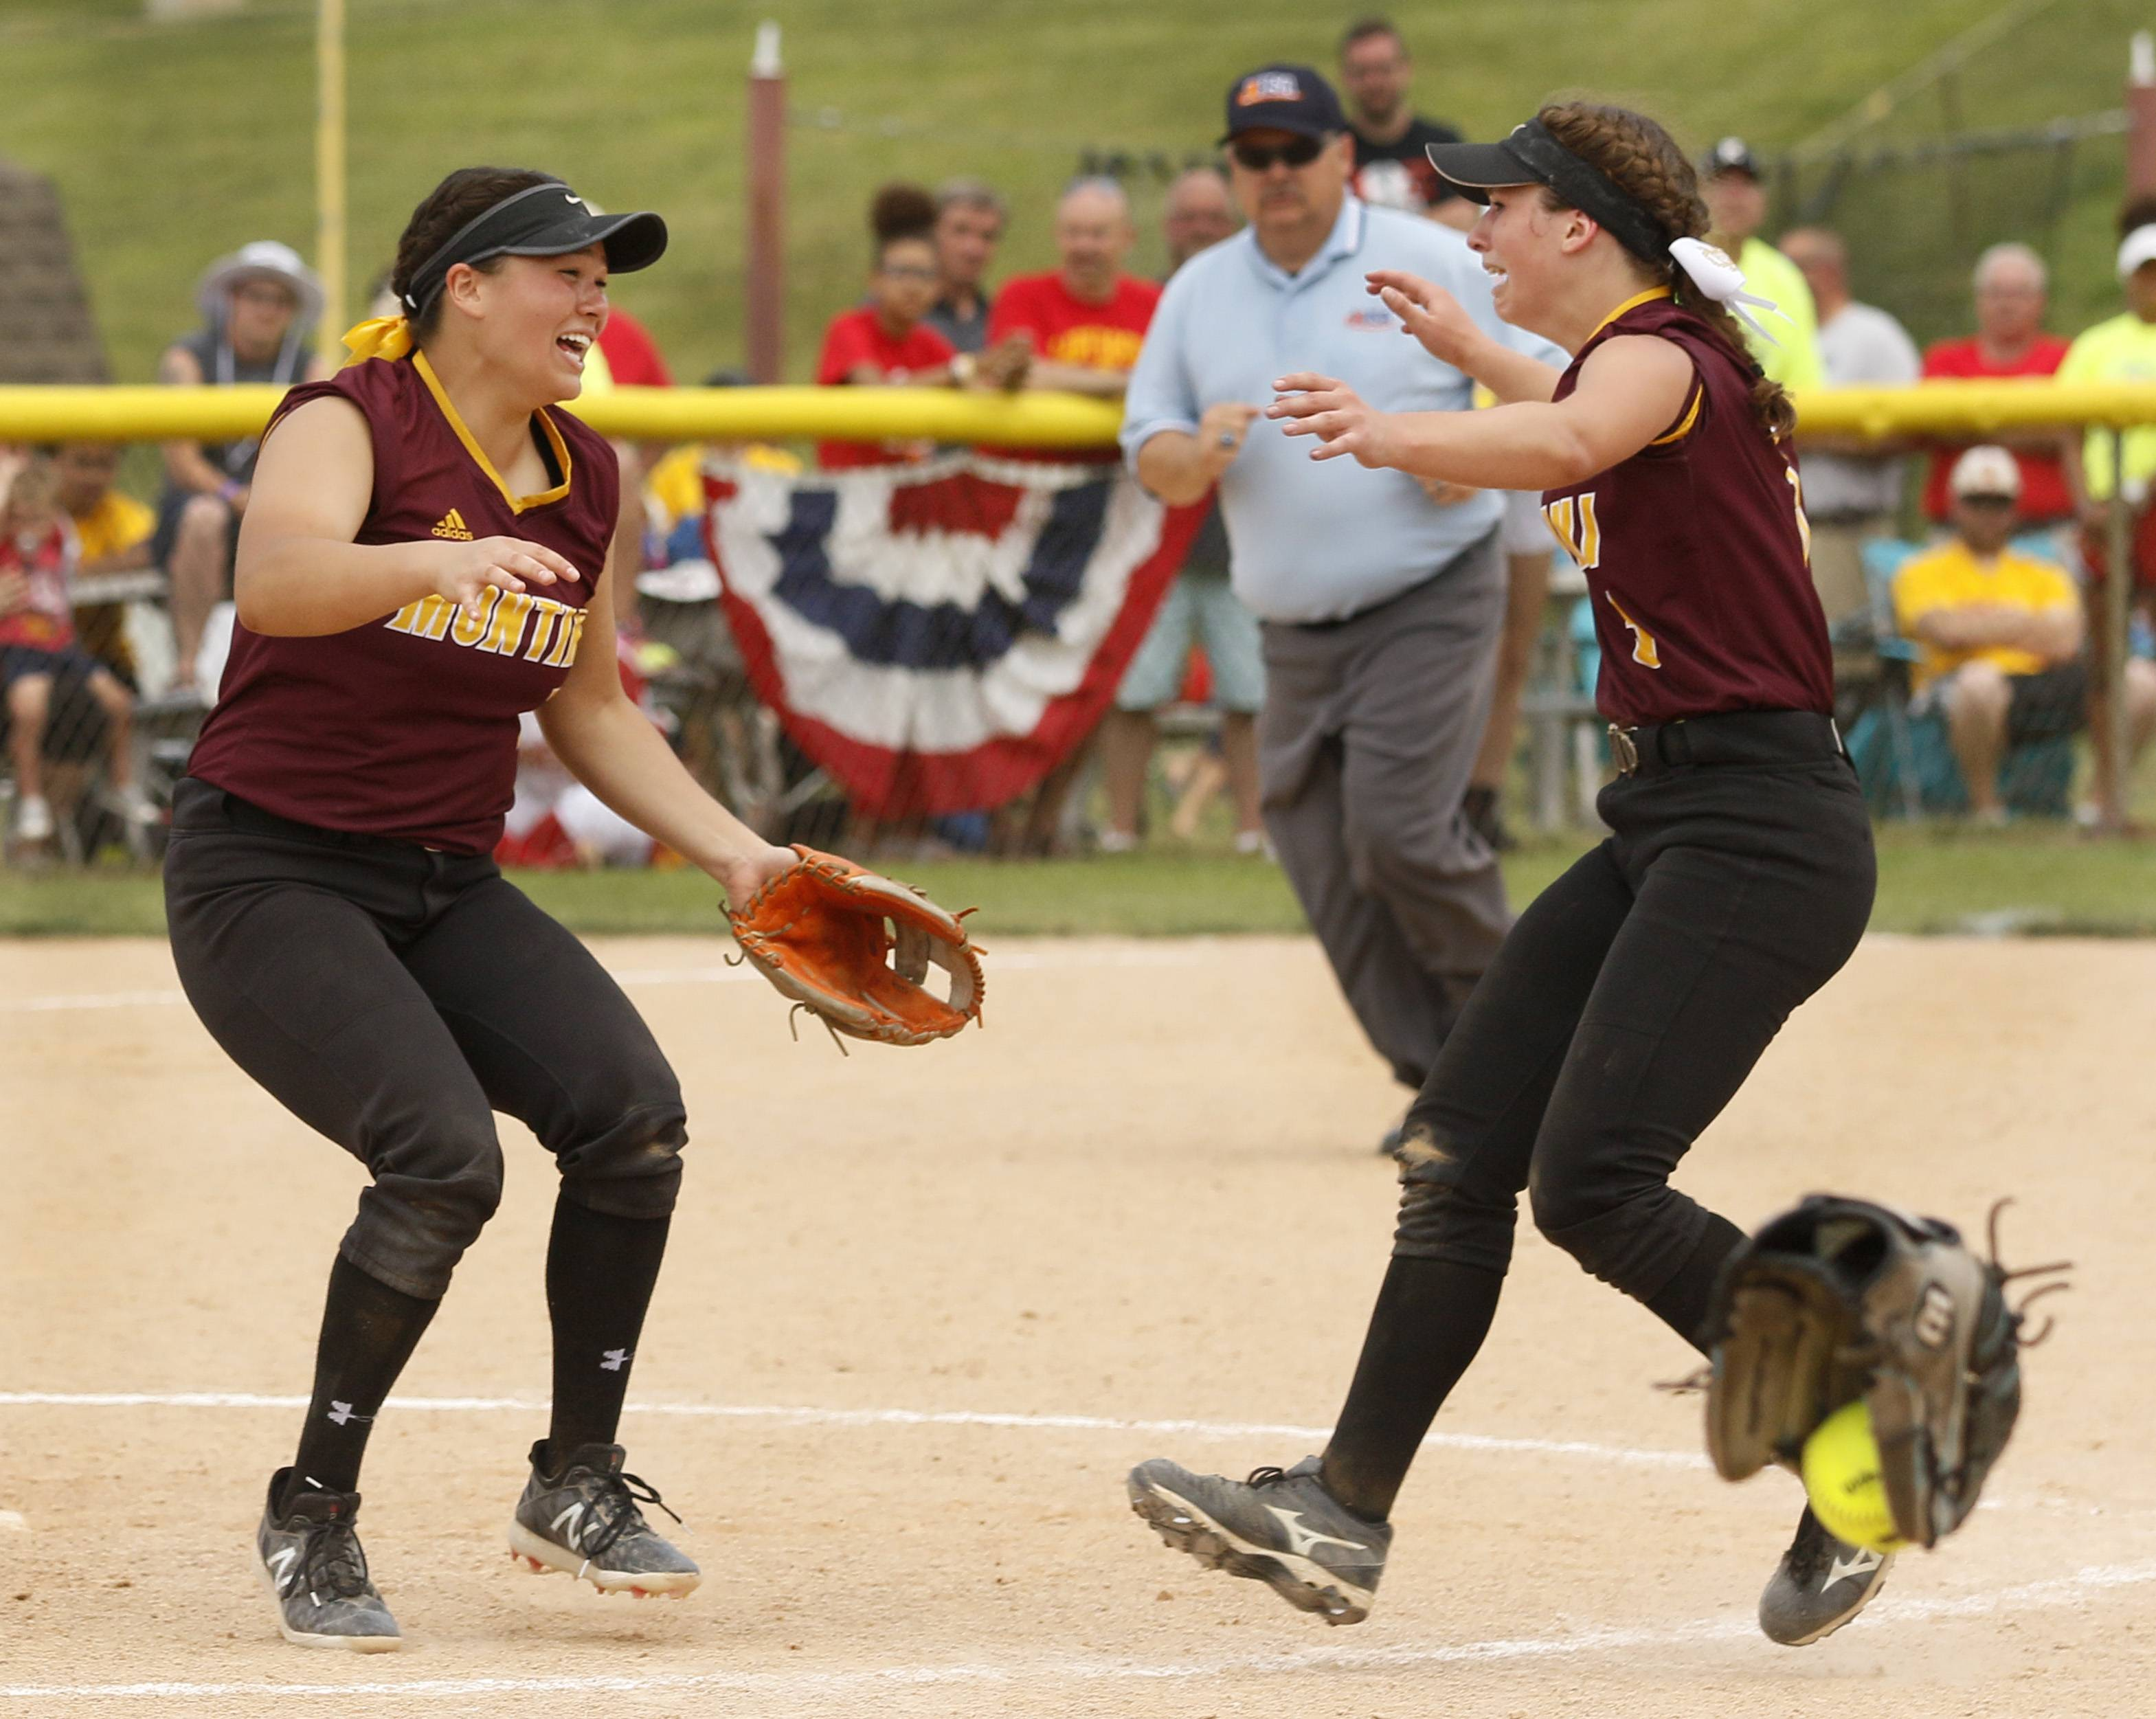 Montini Catholic's Nicole Cuchran, left, and Lauren Latoria, right celebrate their epic 15-8 victory against Kaneland to win the IHSA Class 3A state softball championship.